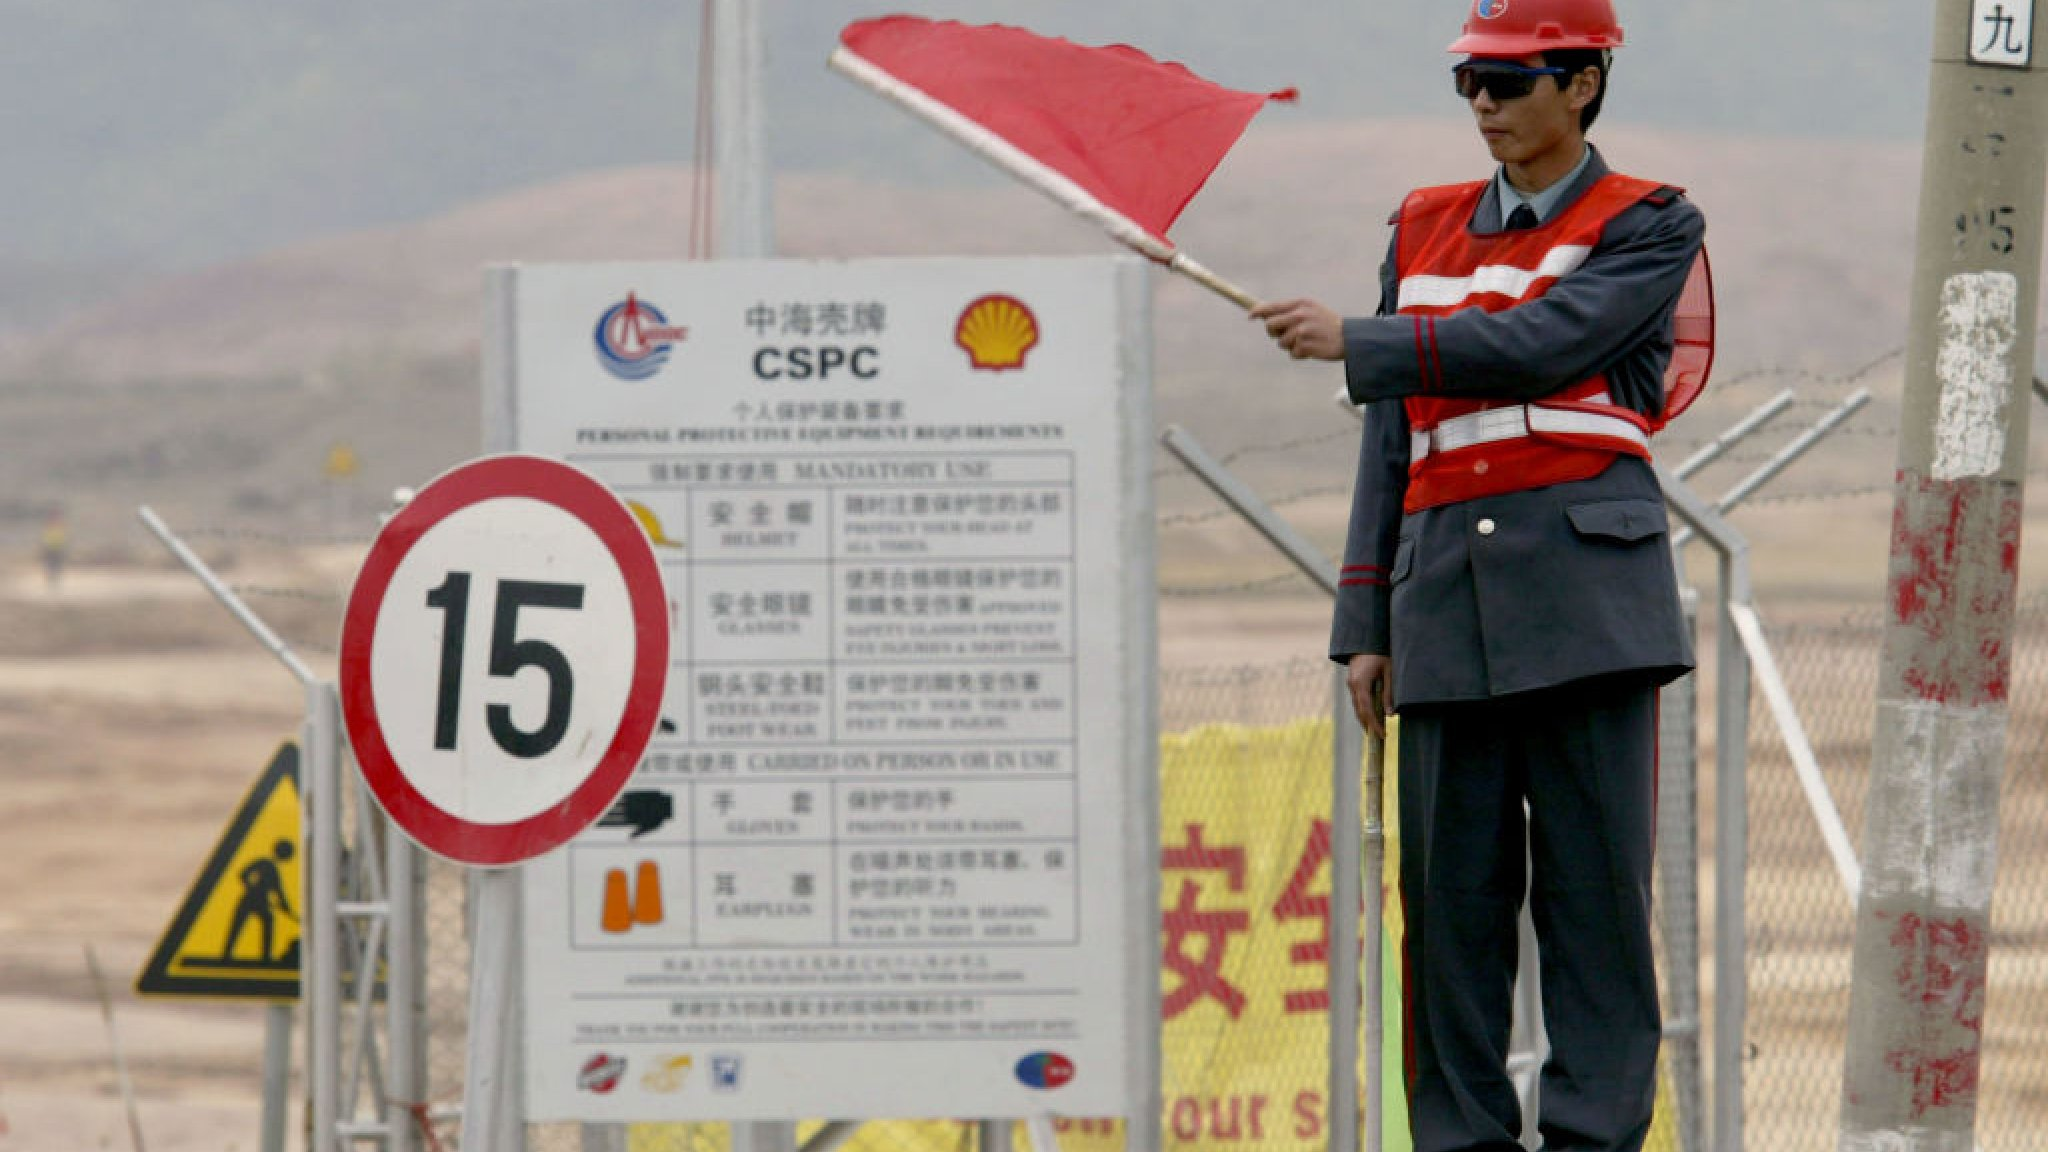 Shell is a victim of large-scale data theft